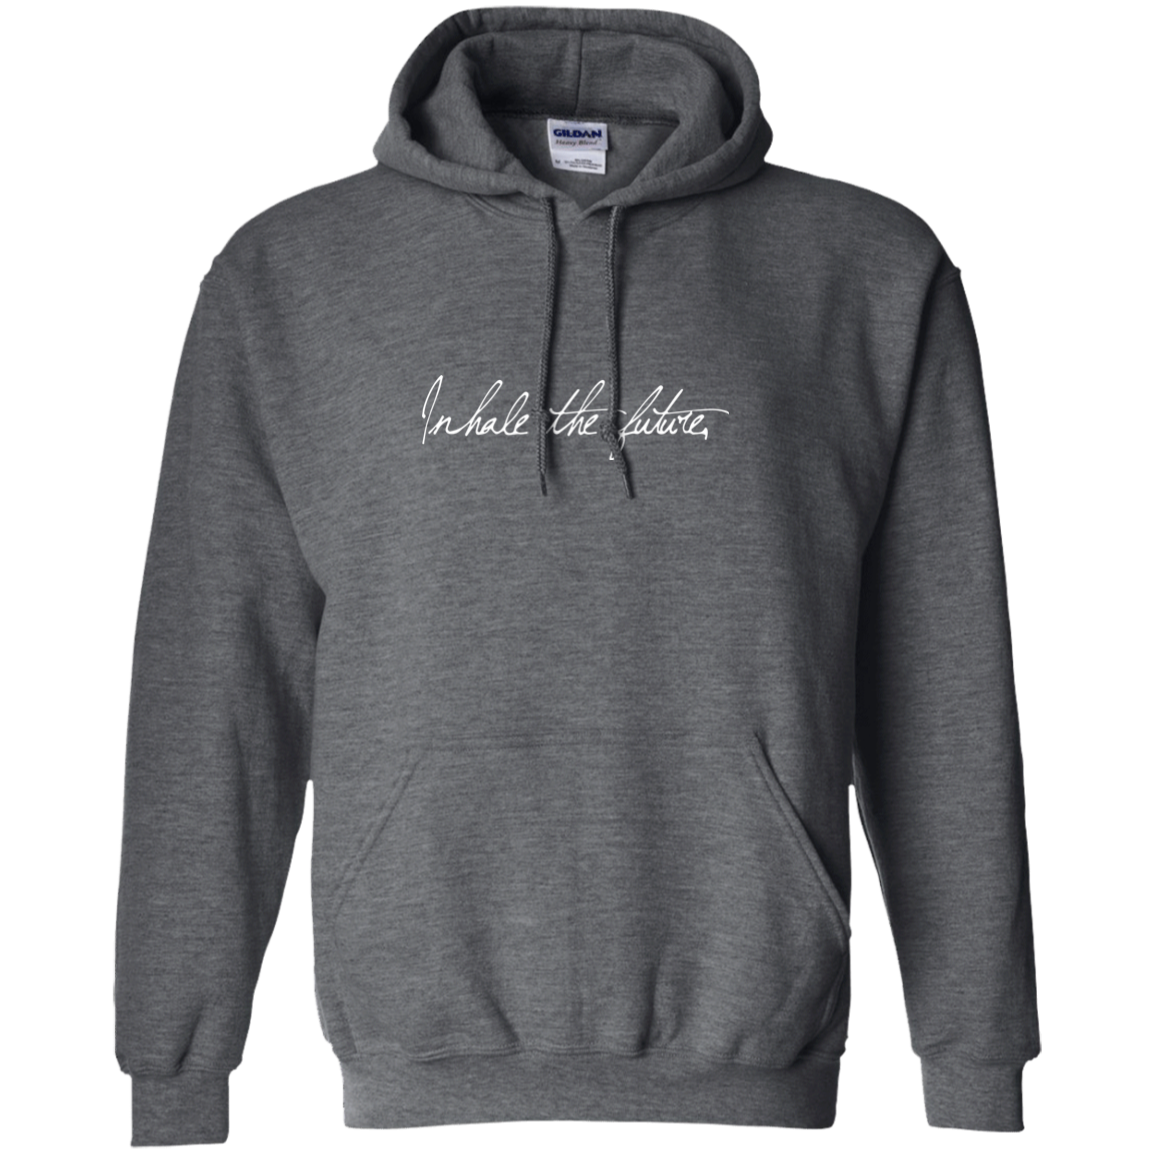 """Inhale Exhale"" Front/Back Printed Unisex Pullover Hoodie - Moonsun Malibu"